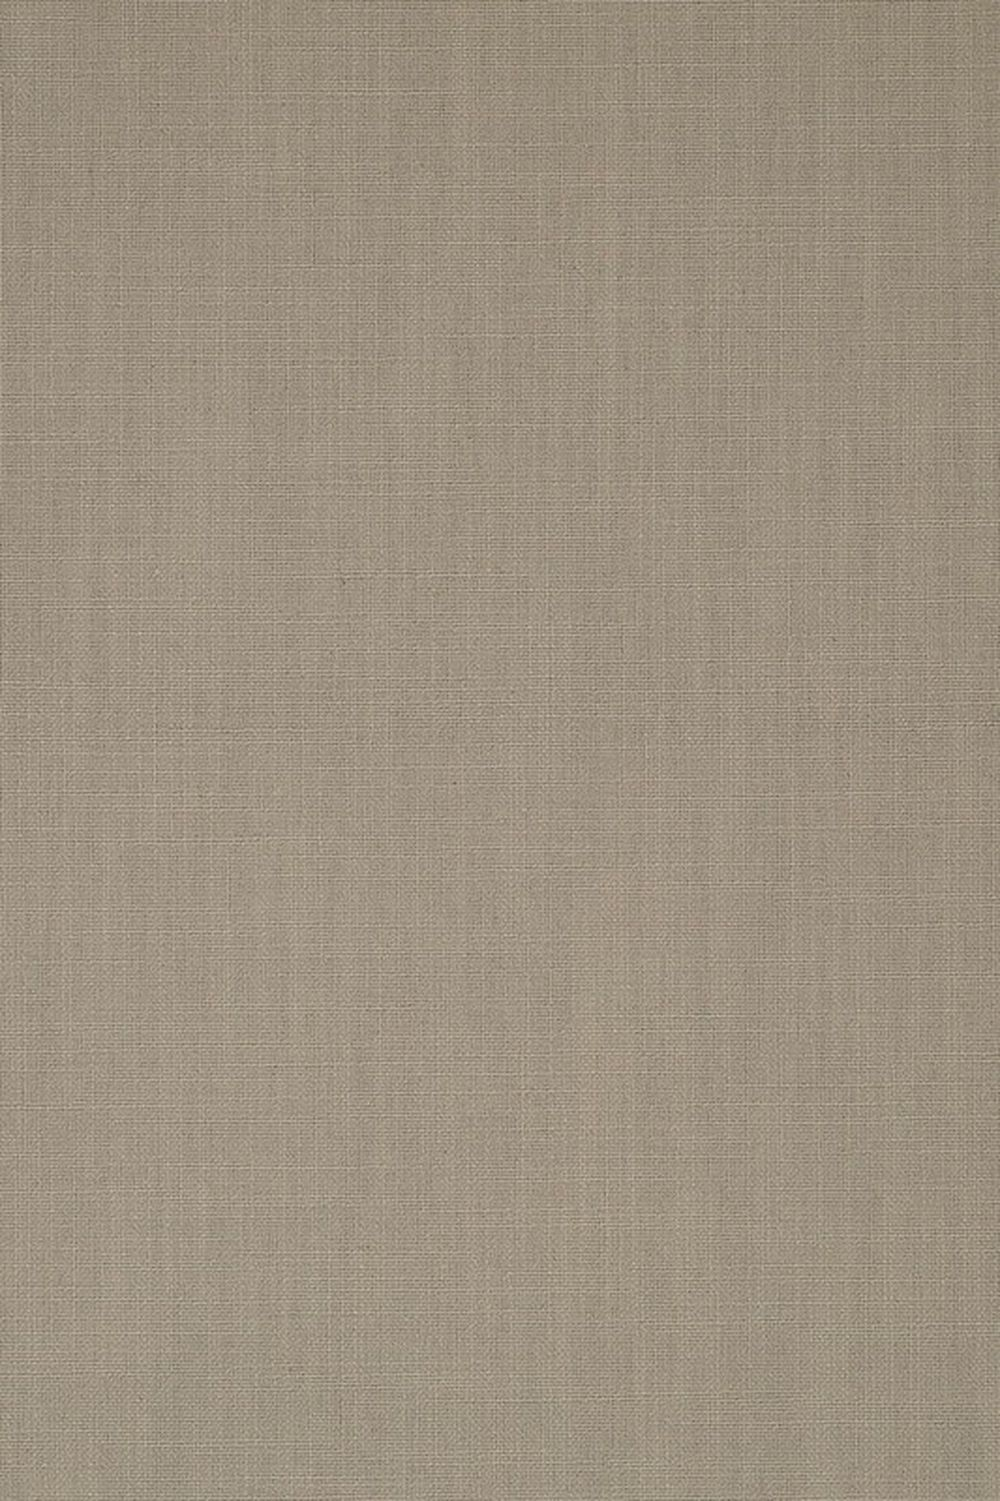 Photo of the fabric Lusk Linen swatch by Pegasus. Use for Upholstery Heavy Duty, Accessory. Style of Plain, Texture